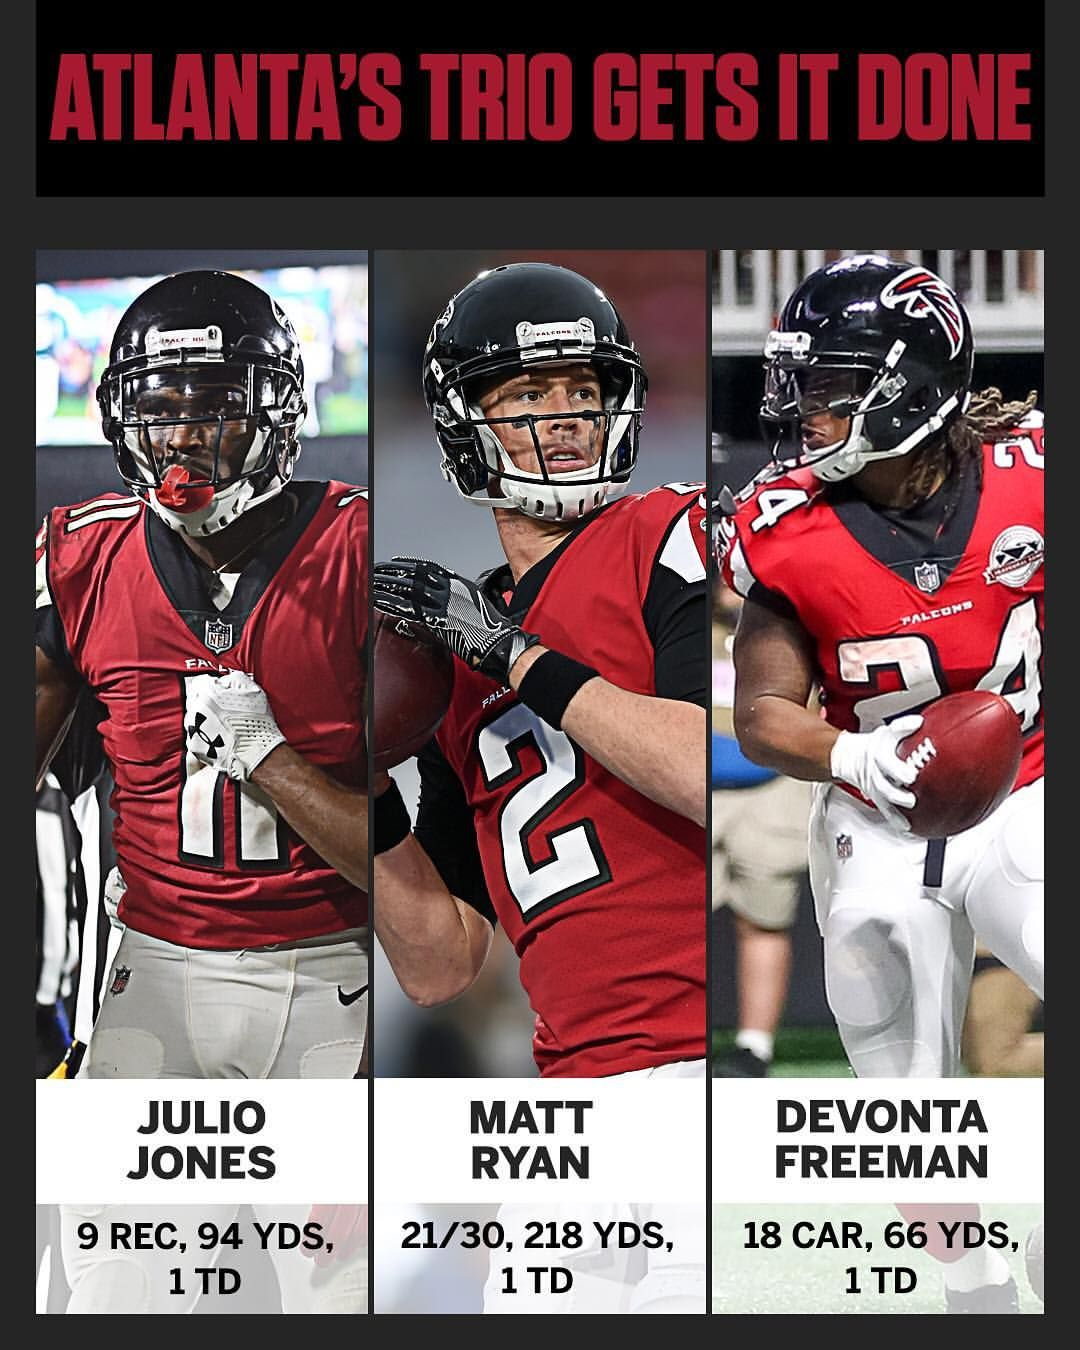 75 6k Likes 486 Comments Sportscenter Sportscenter On Instagram The Reigning Nfc Champs Are Heading To Phill Falcons Football Home Team Atlanta Falcons